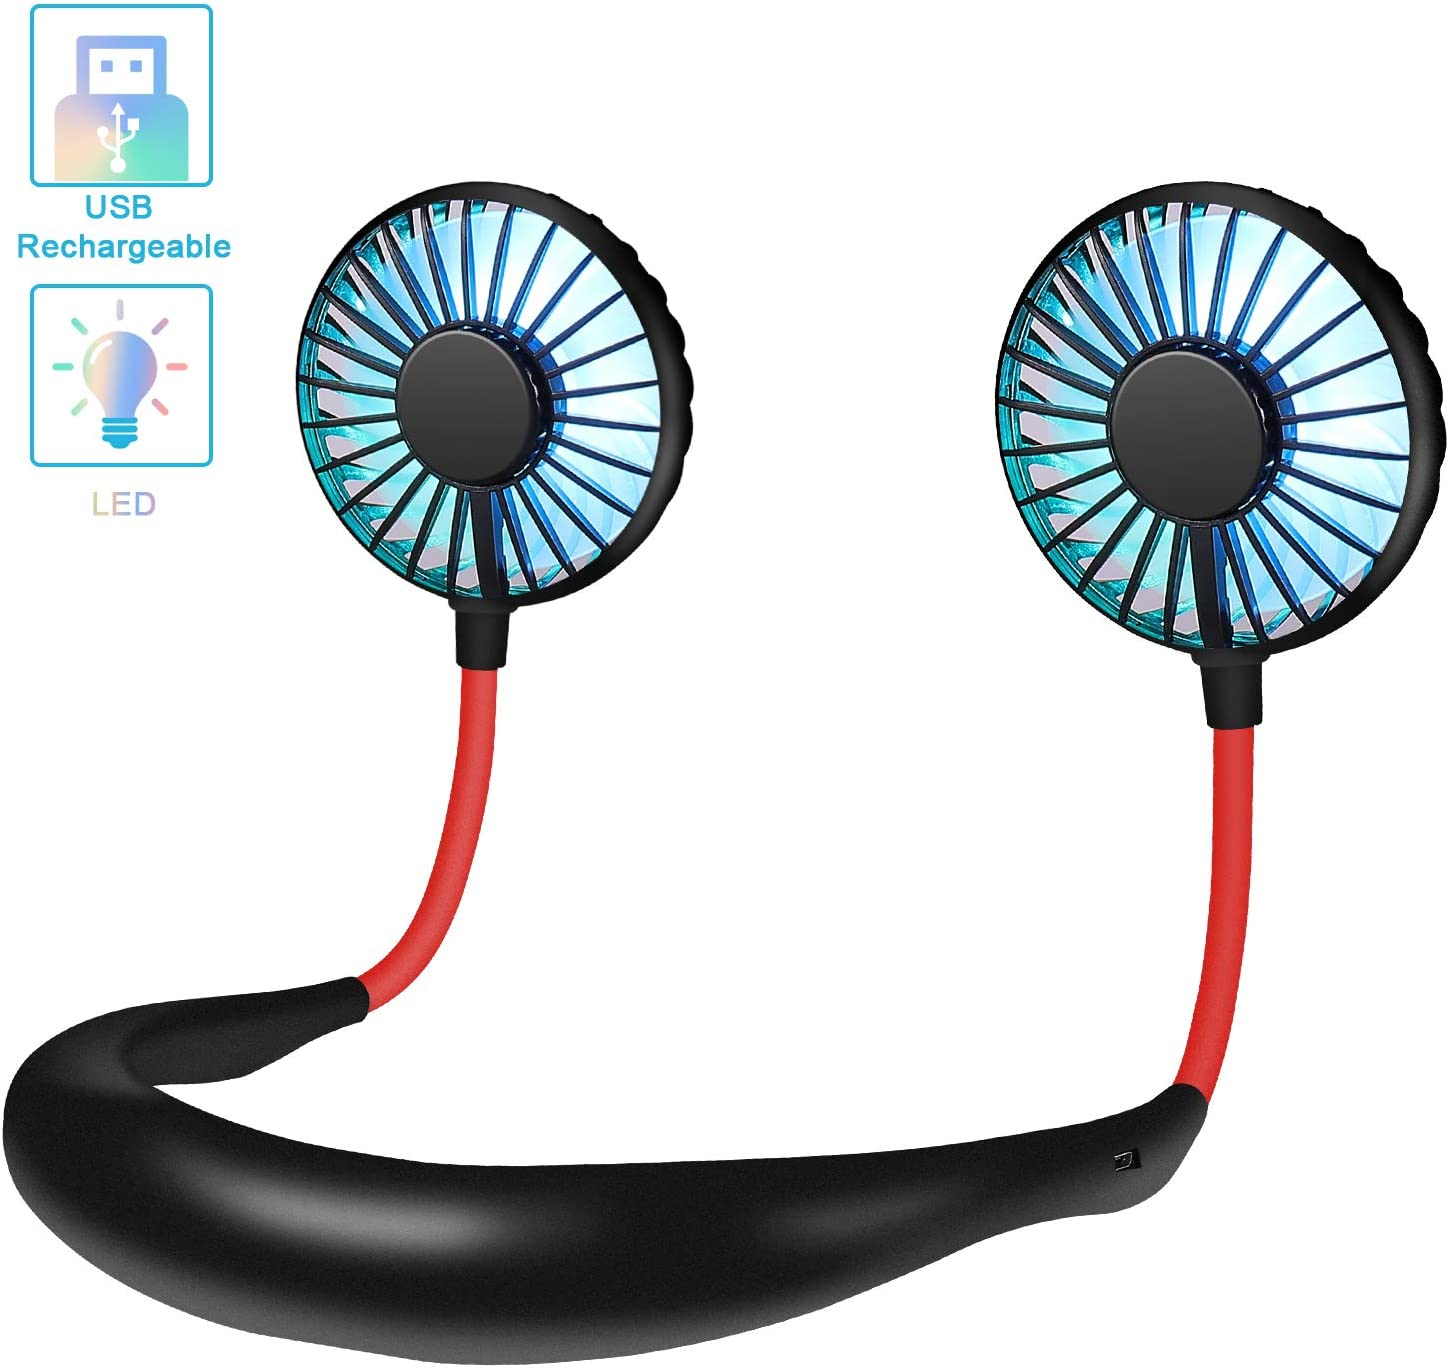 Hand Free USB Personal Fan Rechargeable Mini LED Neck Fan Headphone Design Sports Fan Heads Rotatable Neckband Fan, 2000mAh, 3 speeds, Quiet, Portable for Office Reading Travel Camping (Black)